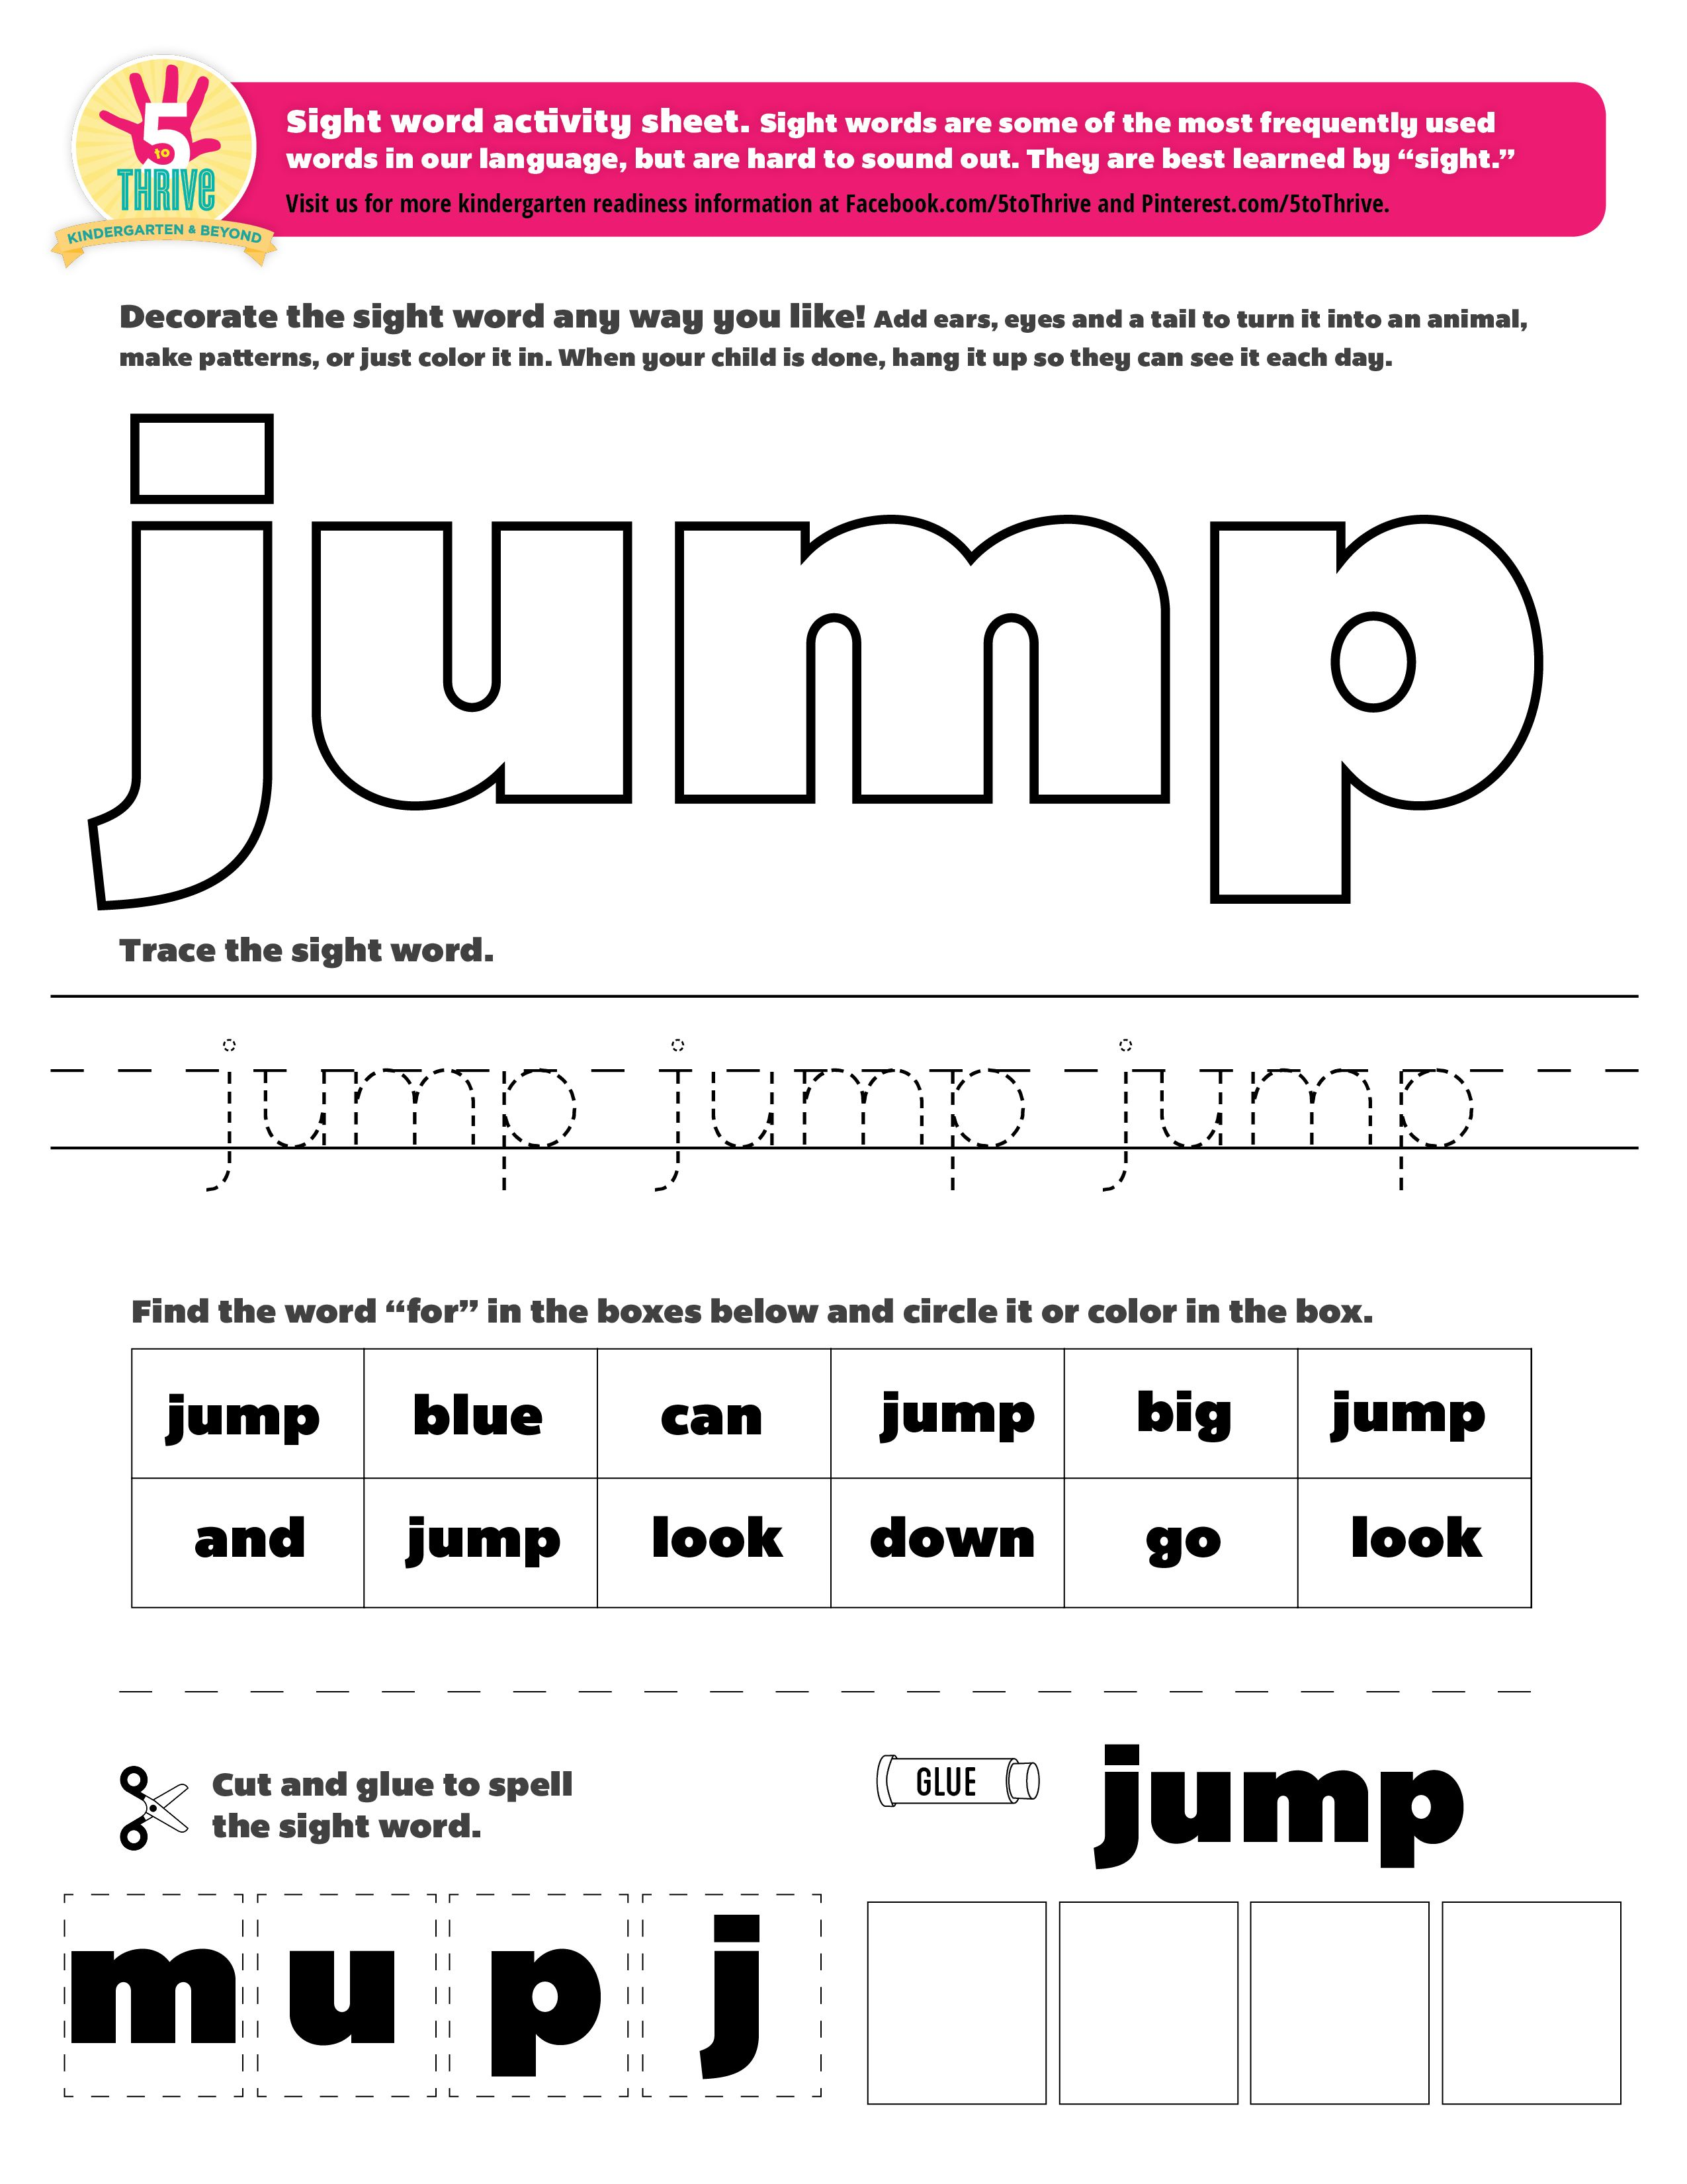 The Sight Word This Week Is Jump Sight Words Are Some Of The Most Frequently Used Words In Our Languag Preschool Sight Words Sight Word Practice Dolch Words